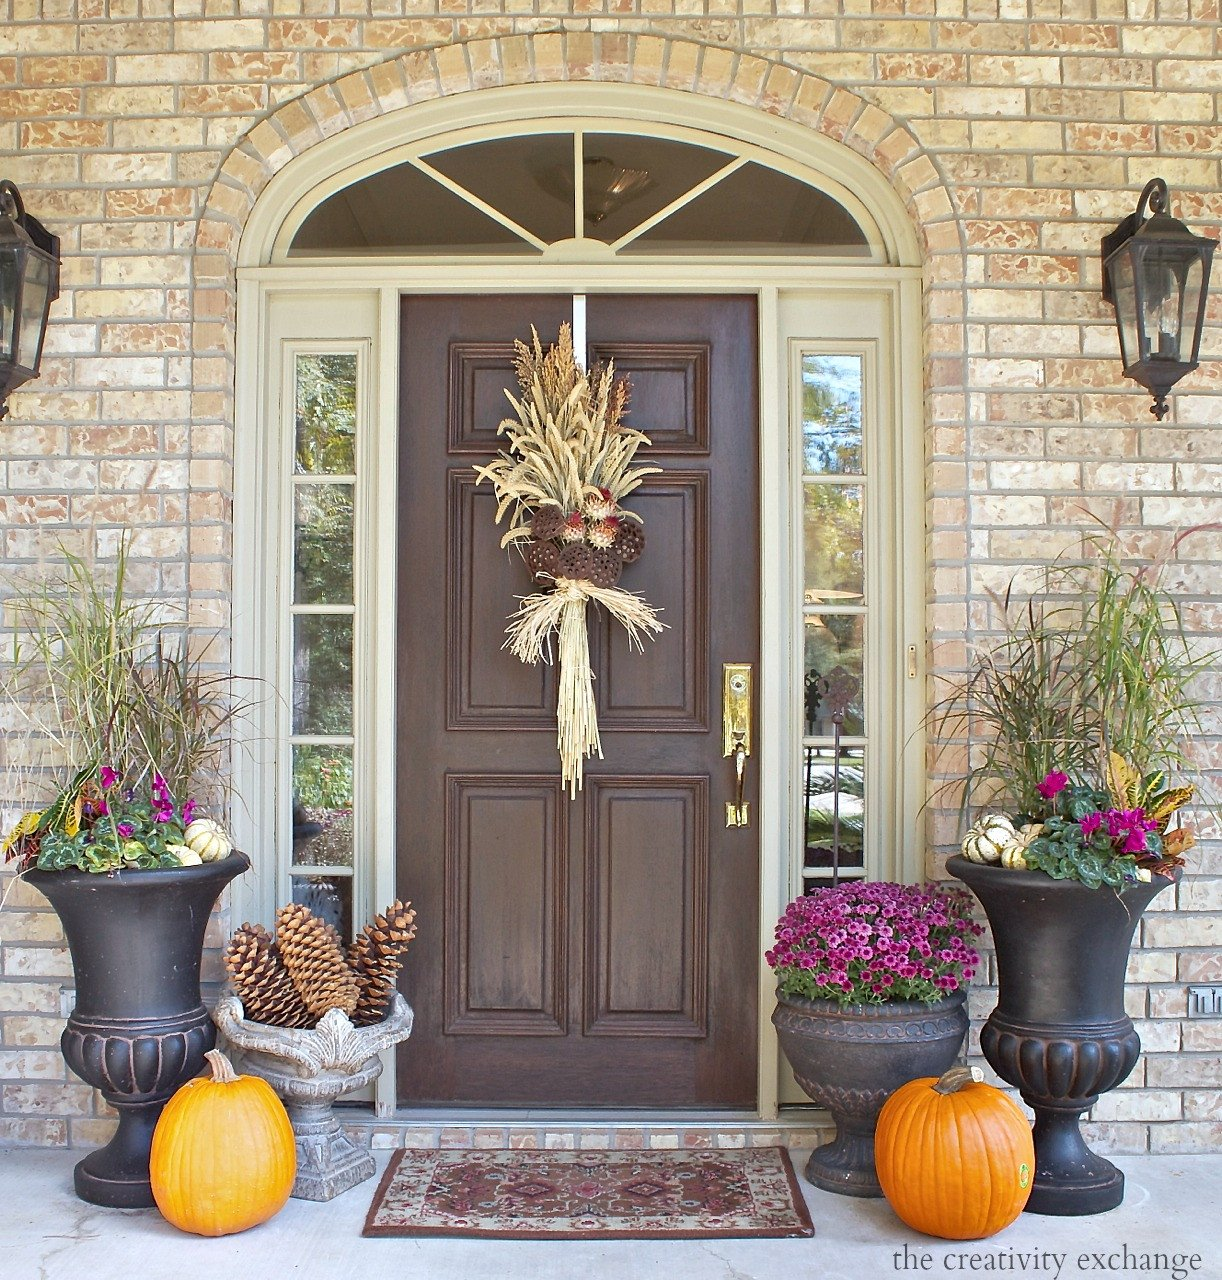 Decor Ideas for Front Porch Luxury Easy Fall Door Swag Using Dried Naturals